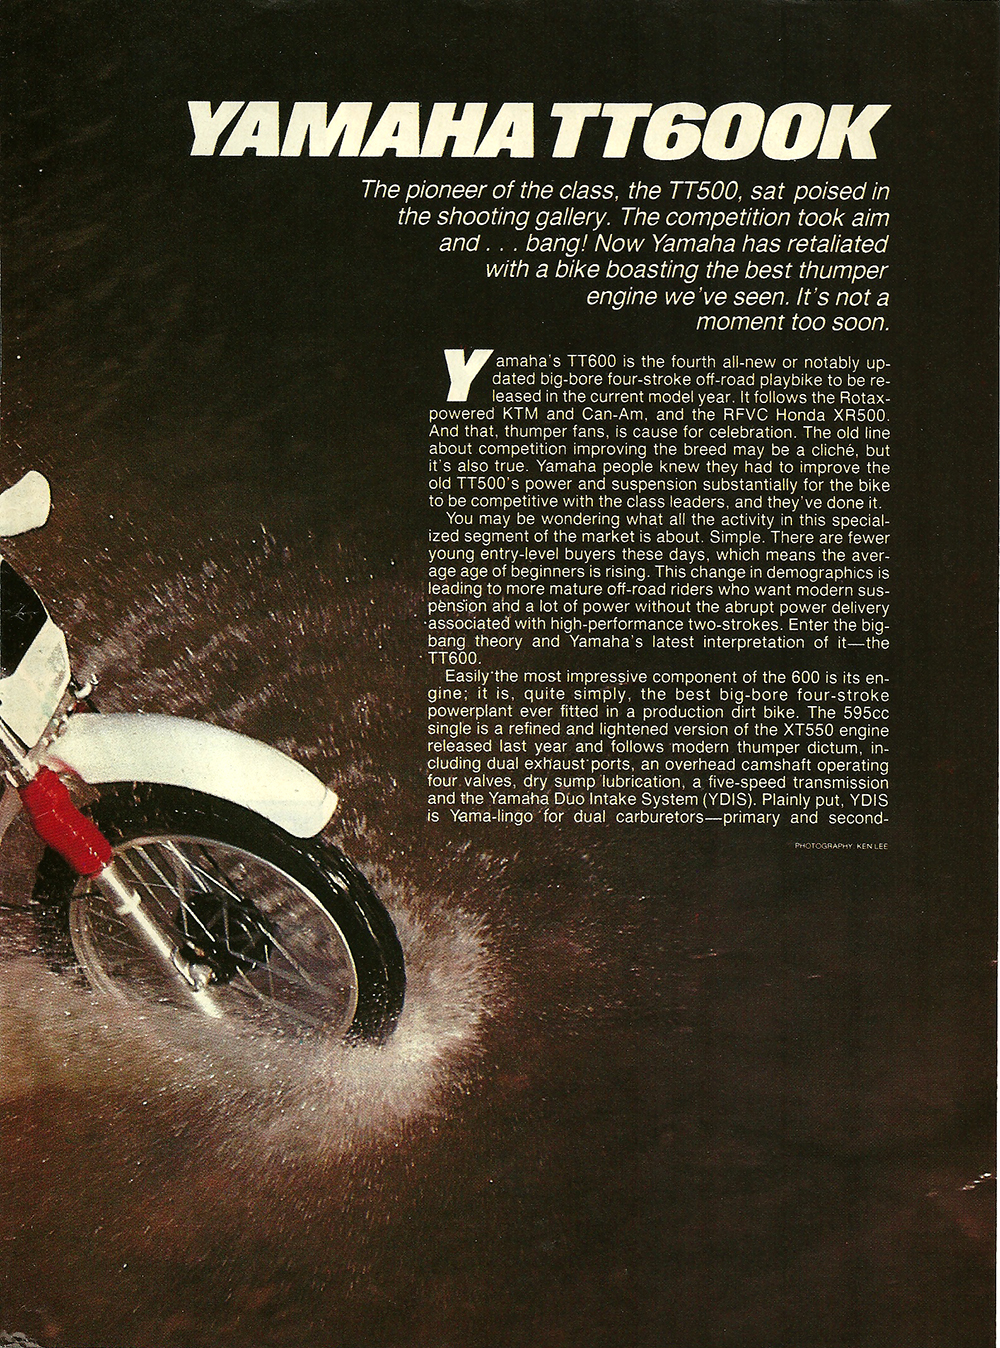 1983 Yamaha TT600K off road test 2.jpg